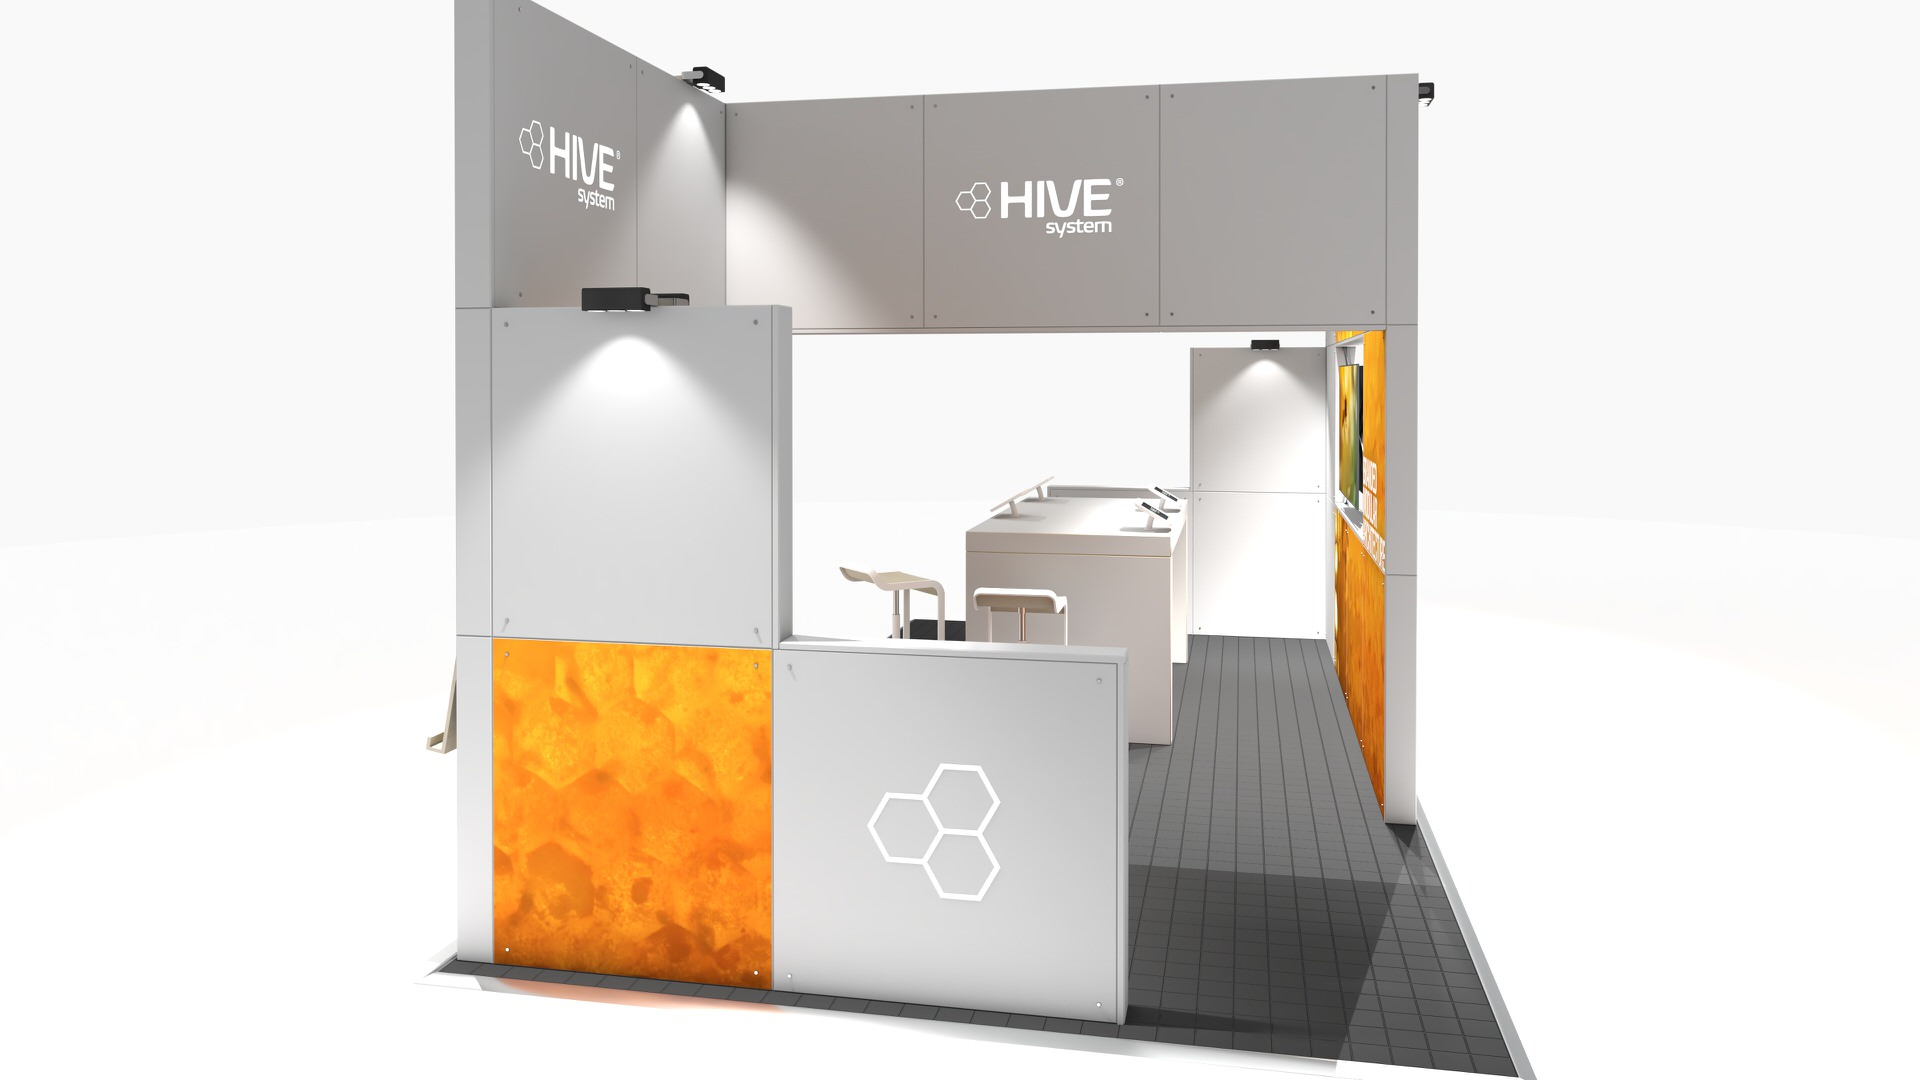 HIVE_Sustainable_Exhibition_System_04.jpeg